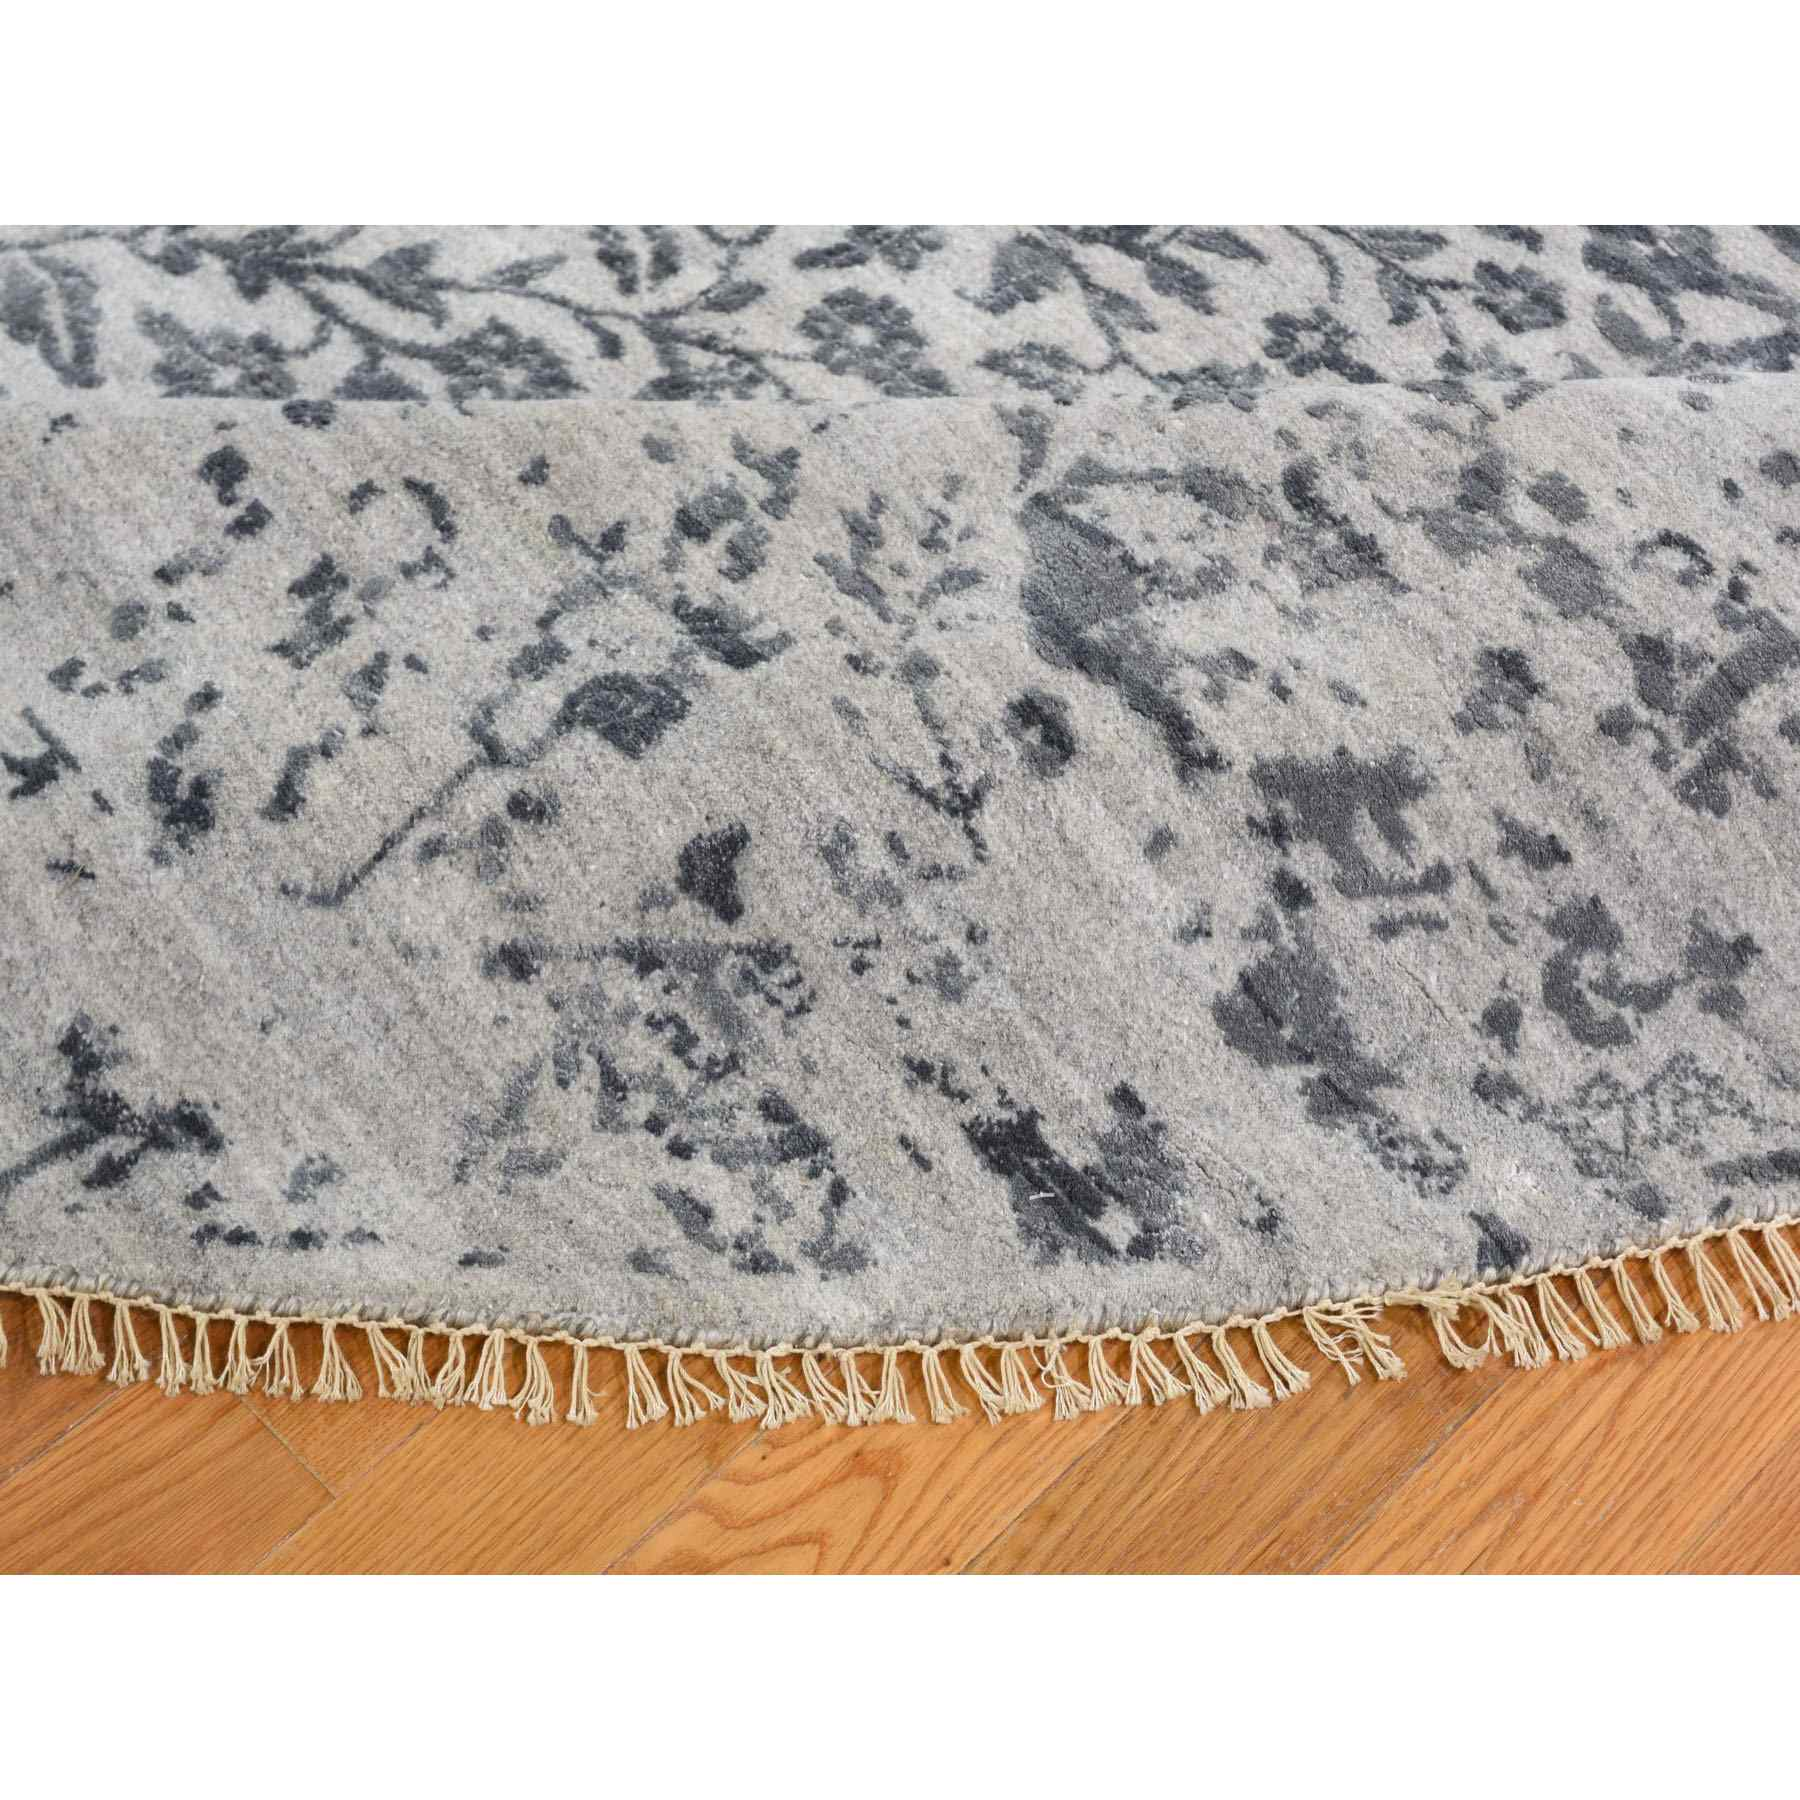 Transitional-Hand-Knotted-Rug-238140